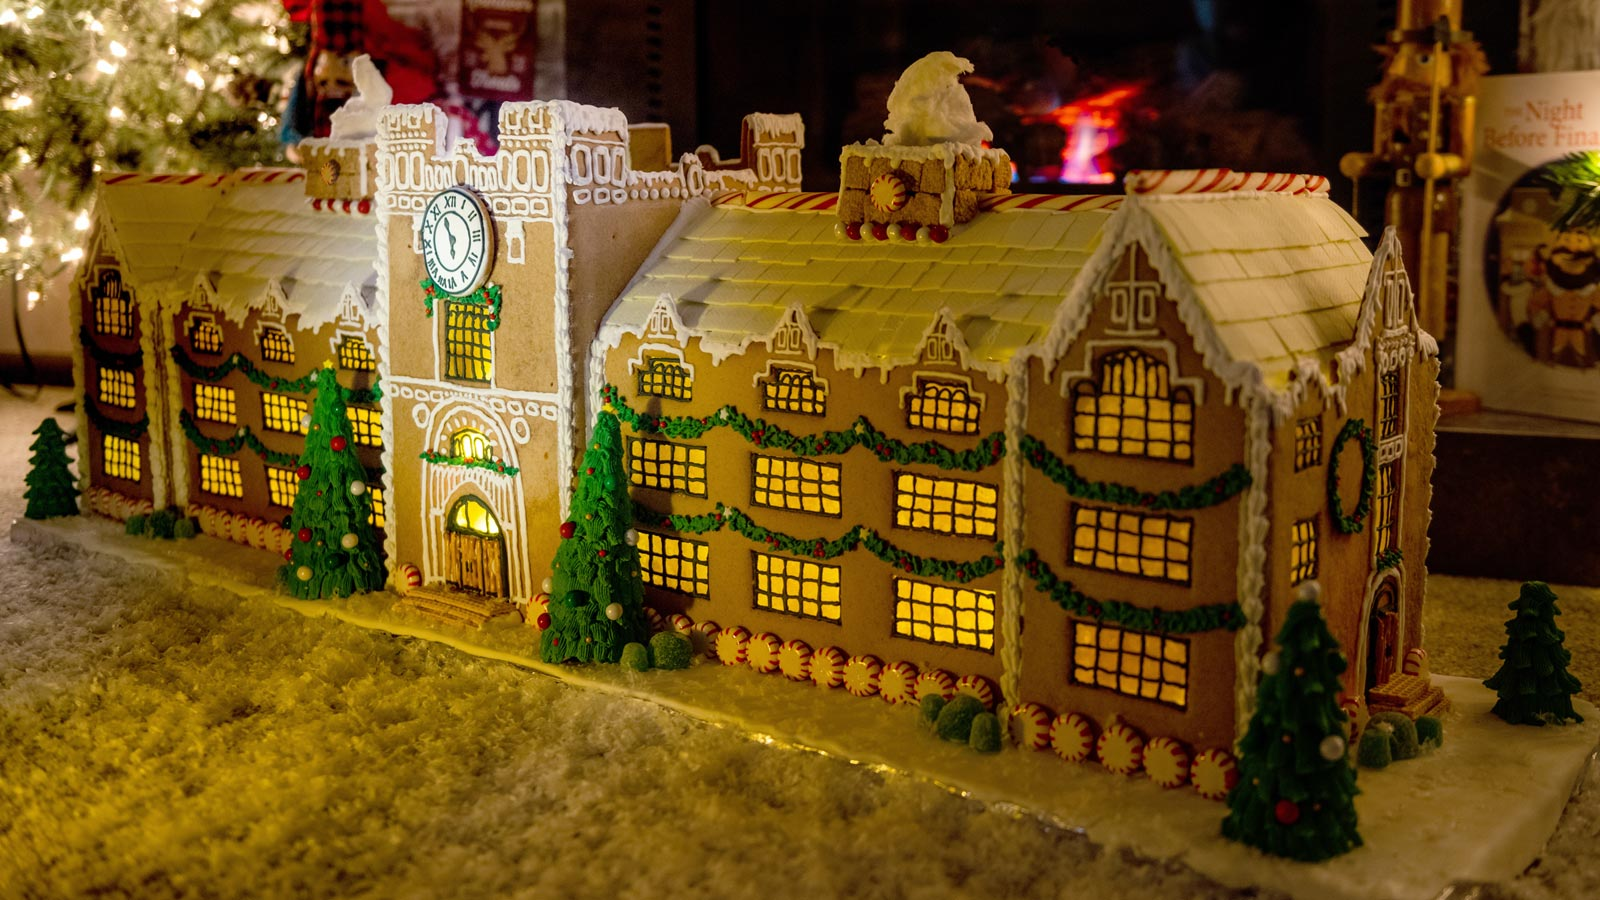 The Administration Building made out of gingerbread, frosting and other sweet treats.